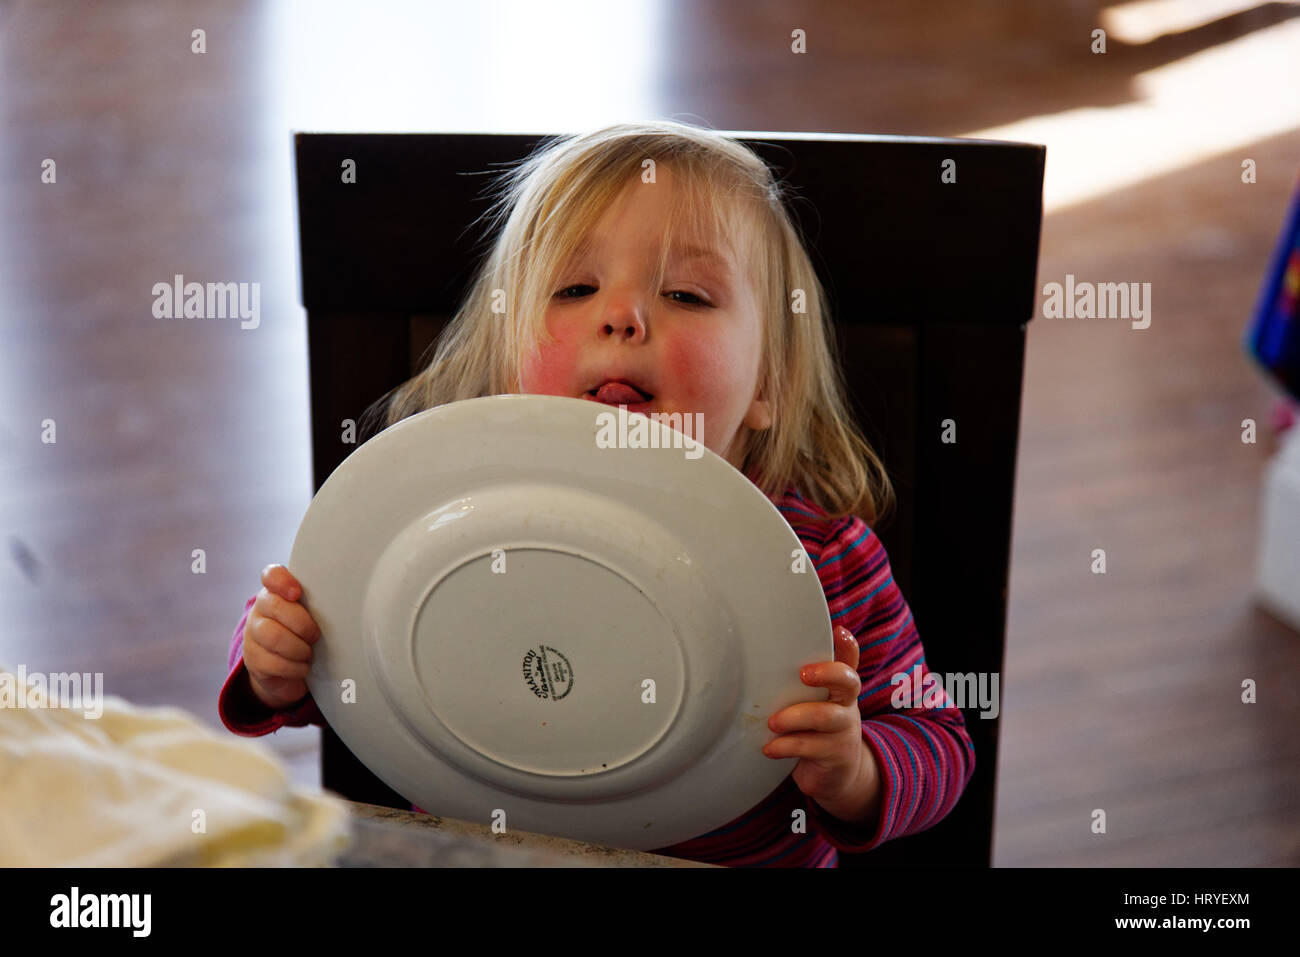 A little girl (2 yr old) licking her plate after dinner - Stock Image